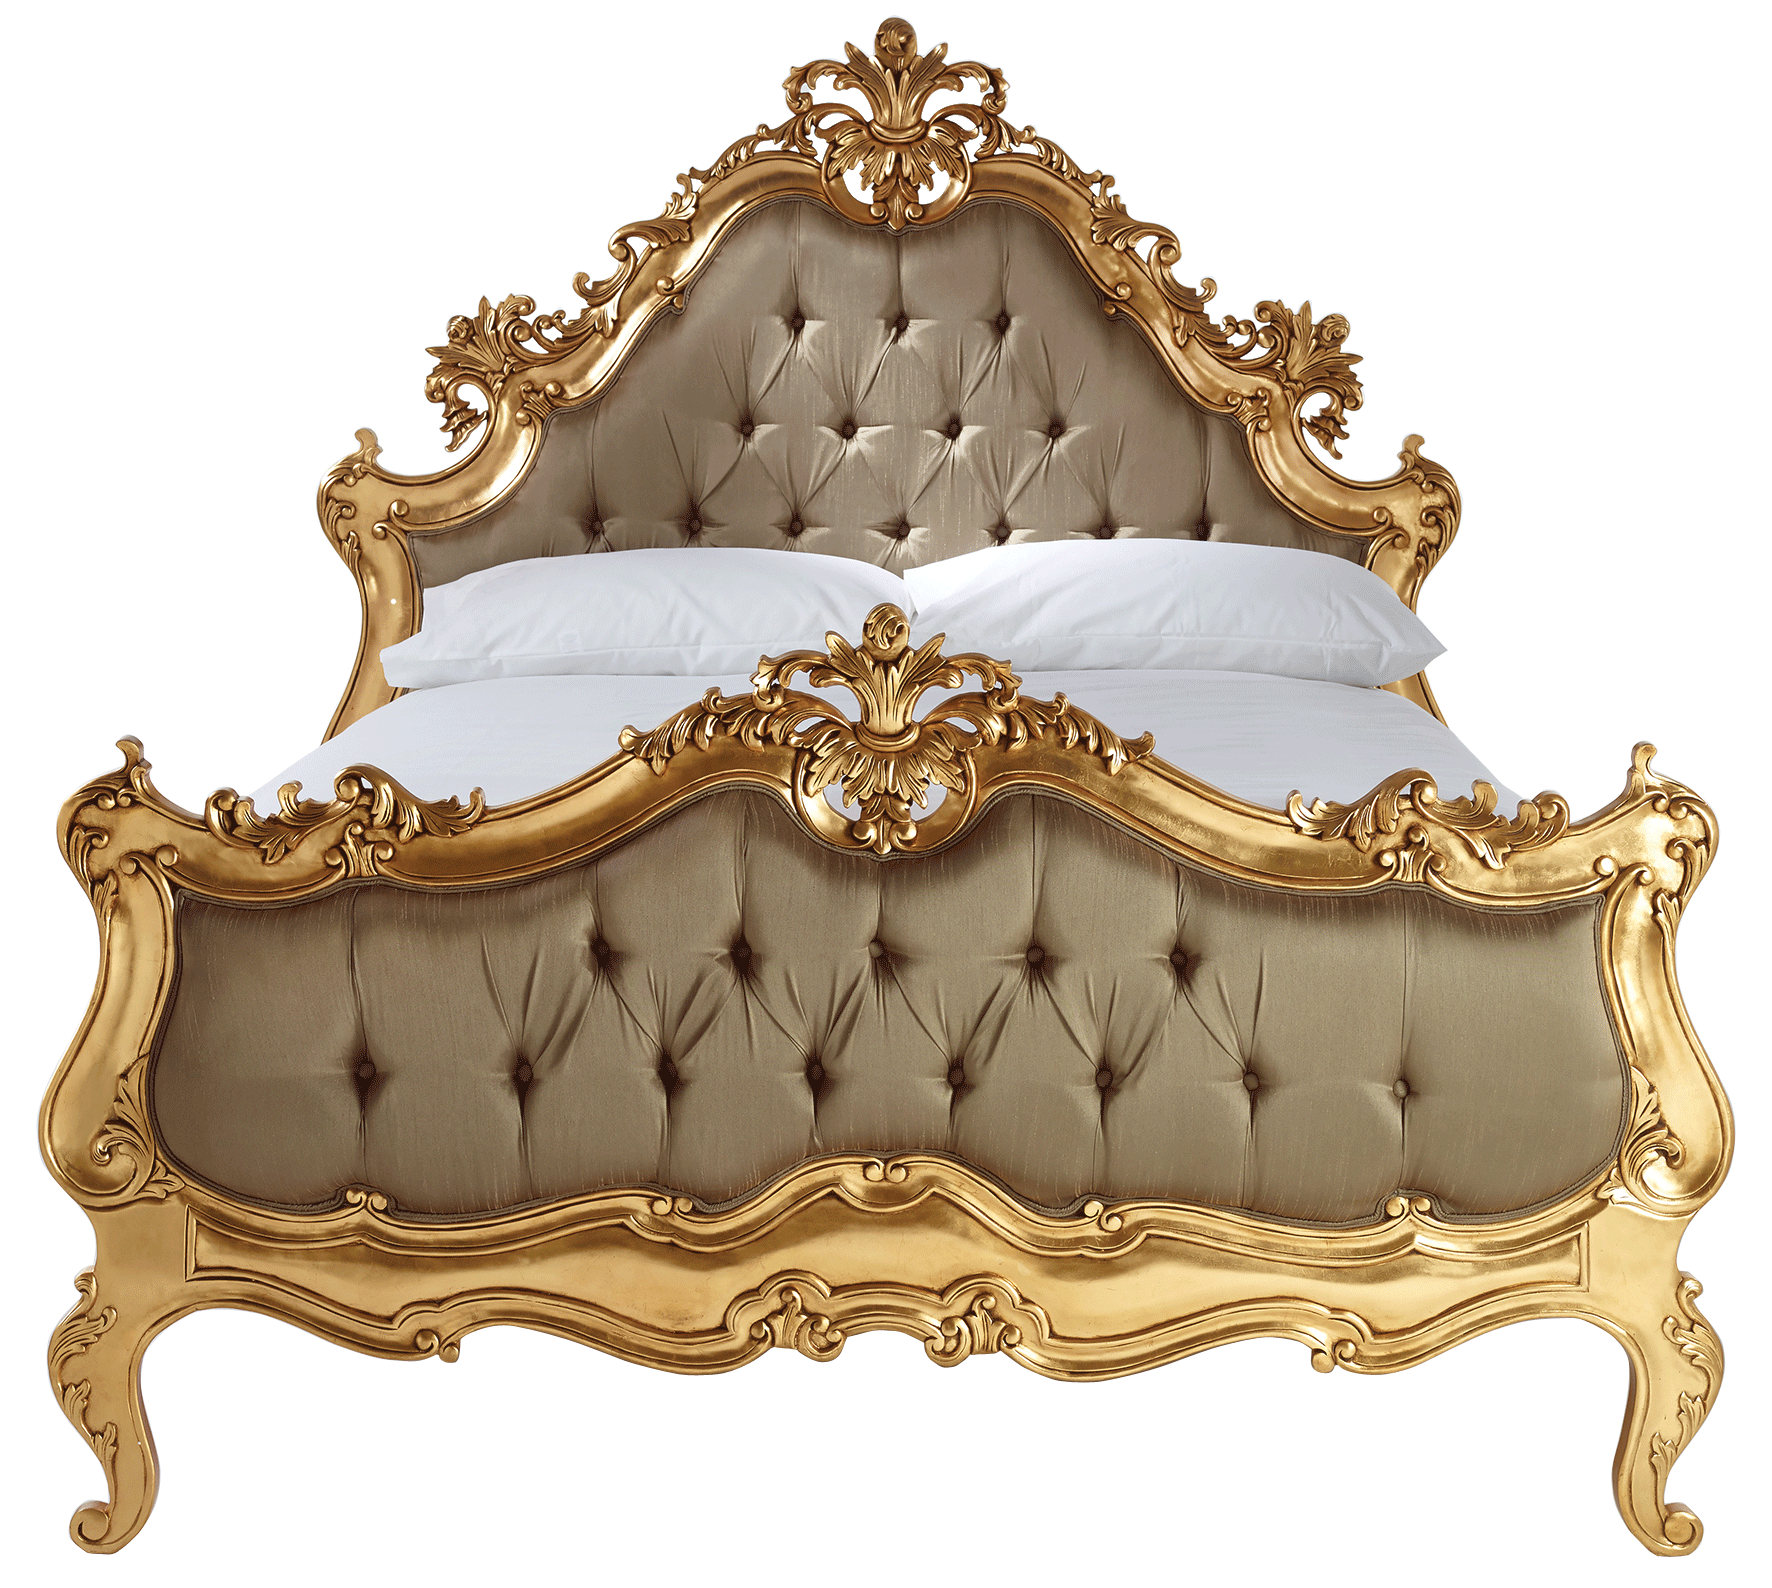 French baroque furniture - Home Baroque Furniture French Newtons Bedroom Such The Nobles Sleep Interior